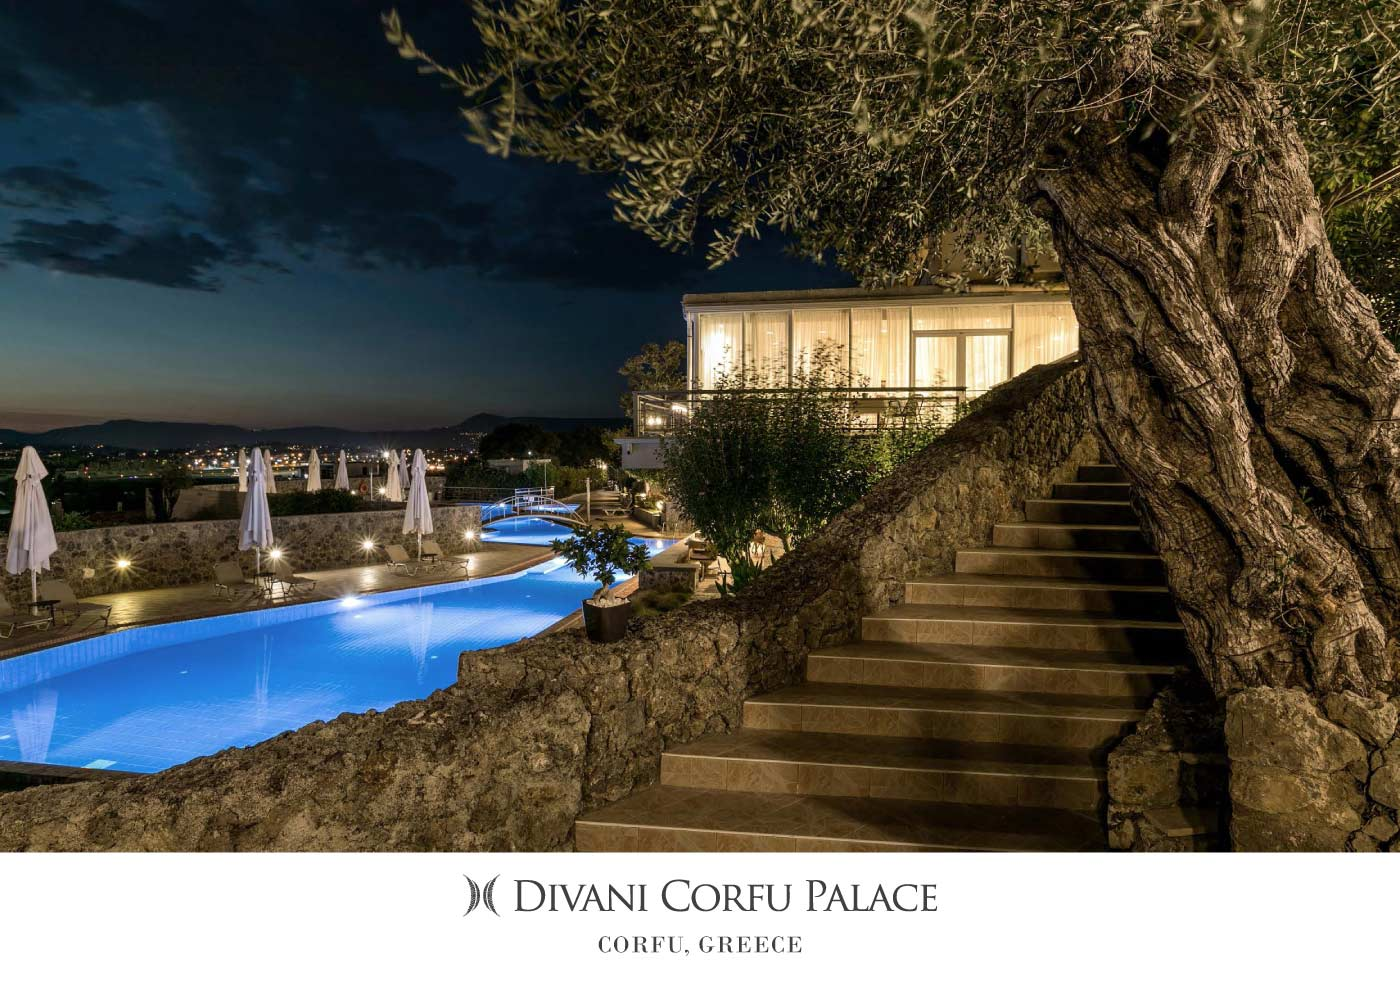 Divani Corfu Palace - Corporate